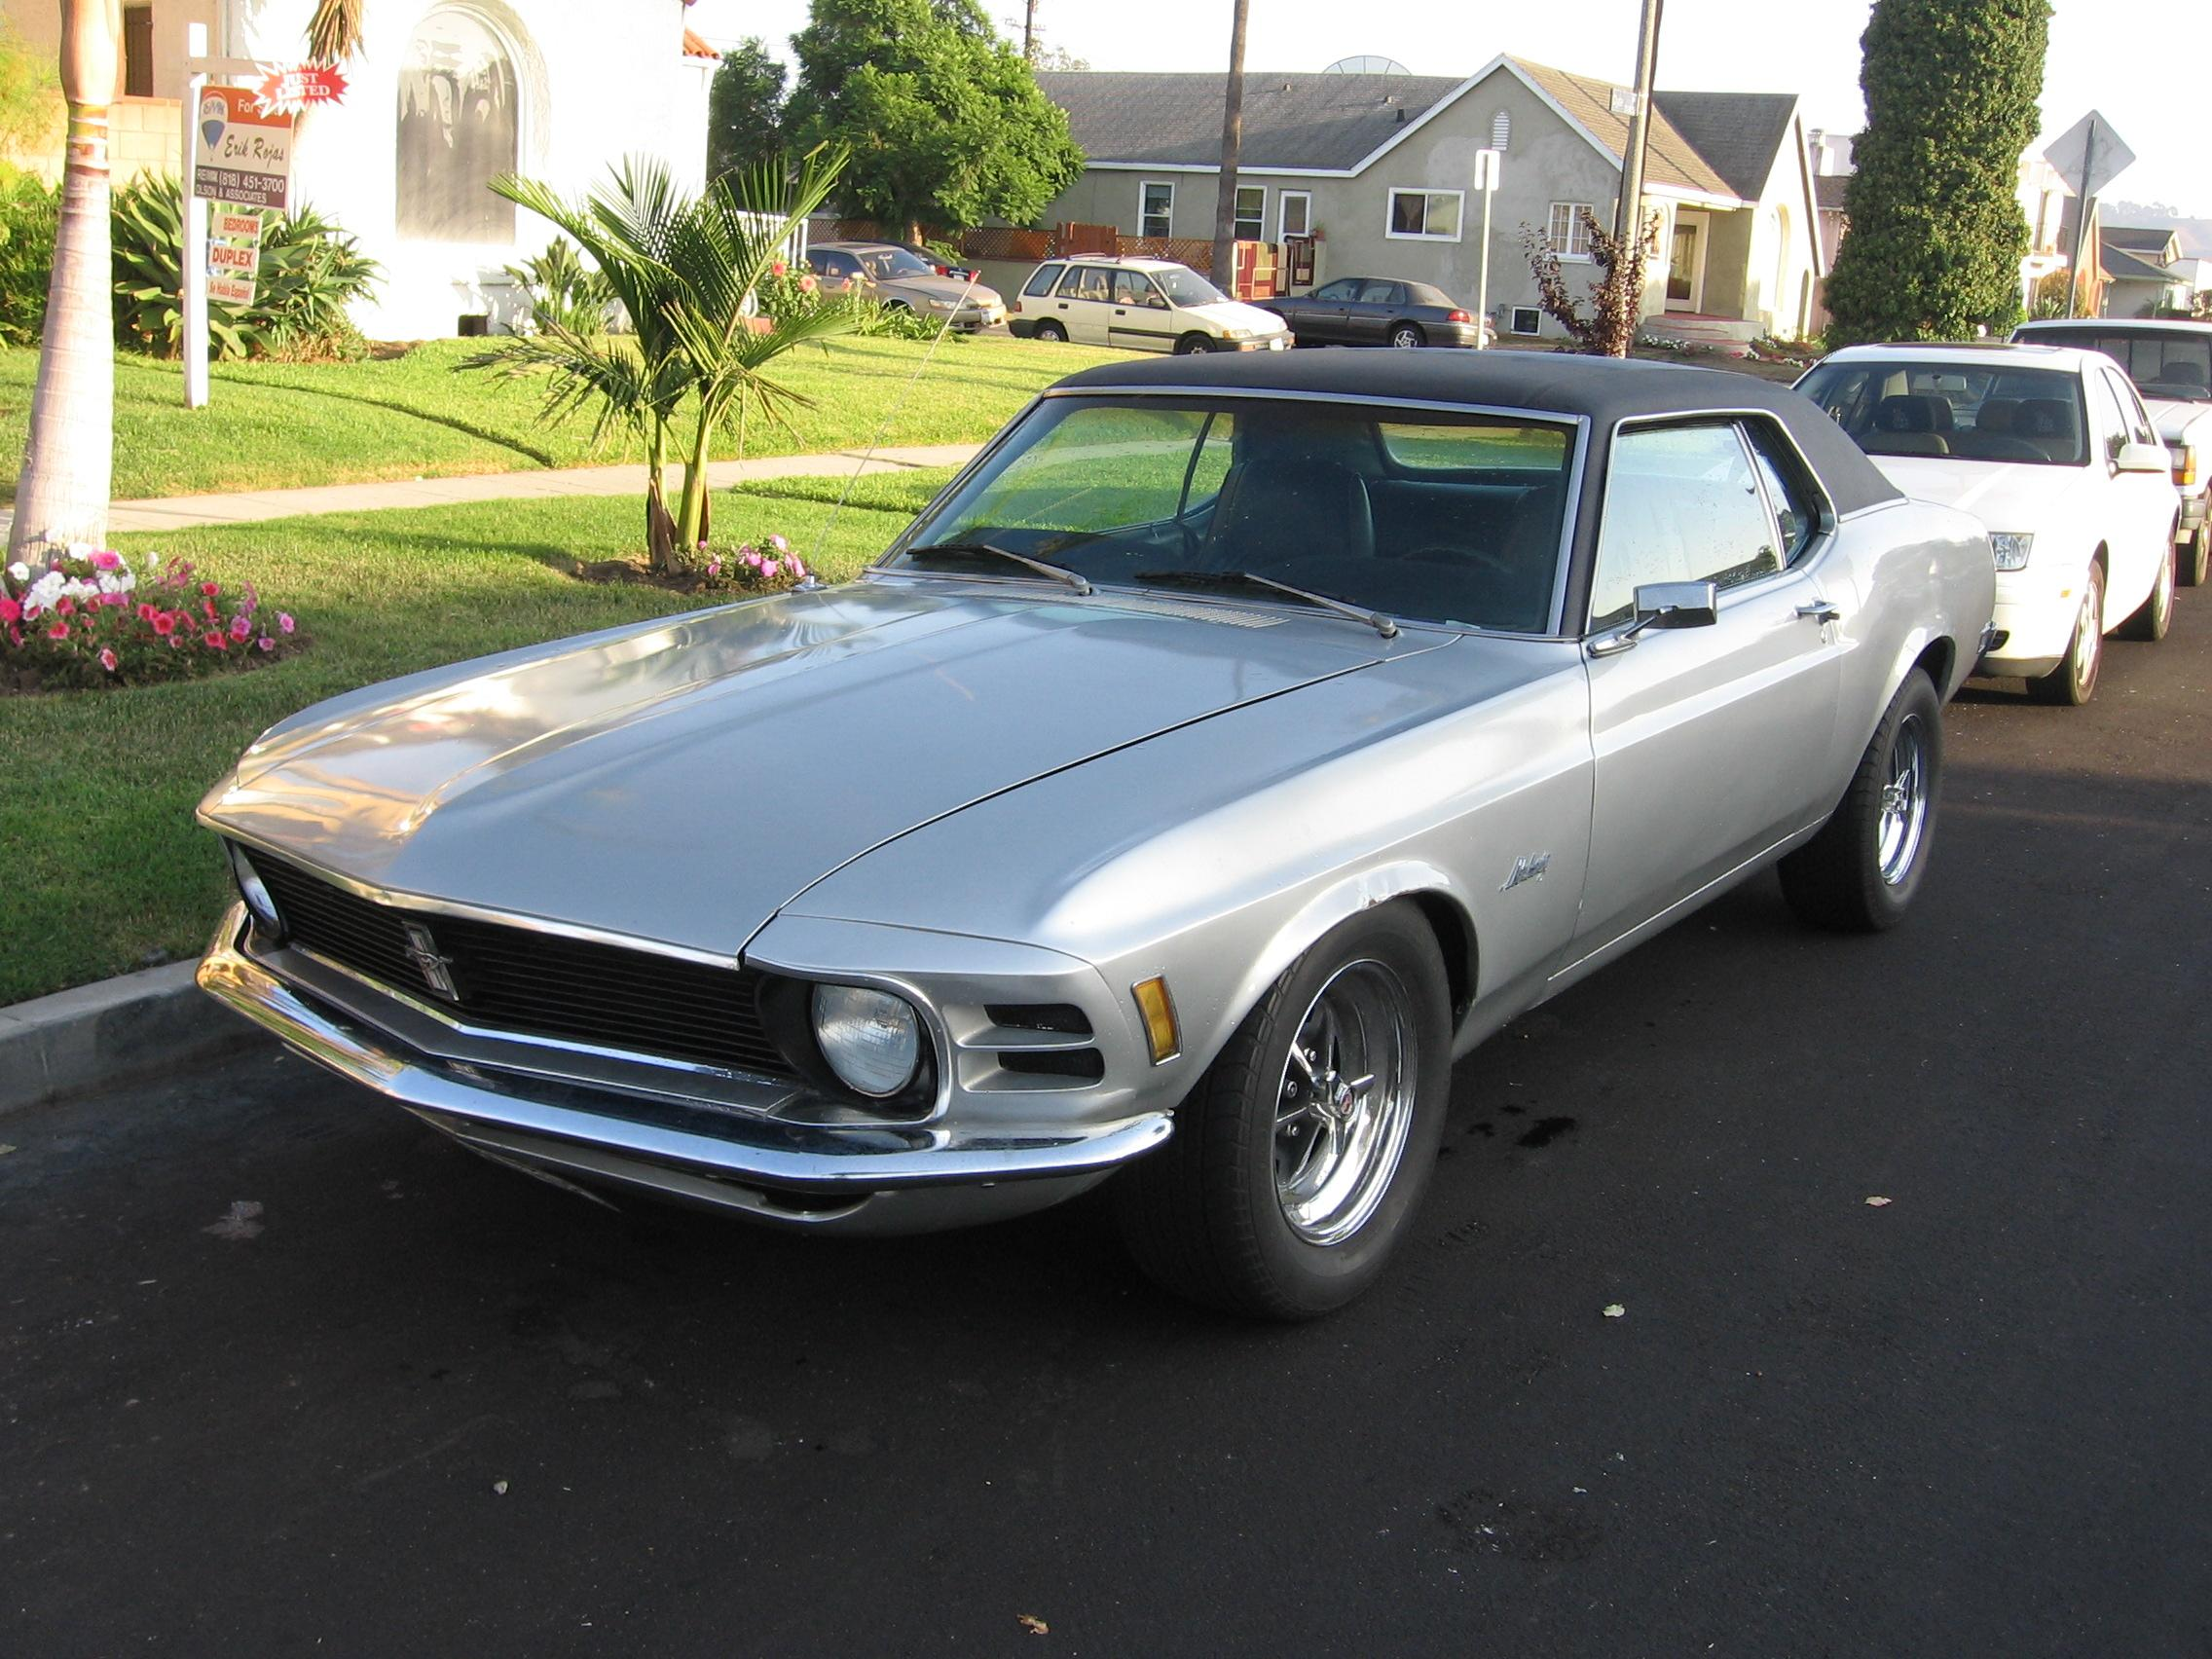 Click image for larger version  Name:mustang front.JPG Views:75 Size:485.8 KB ID:21581